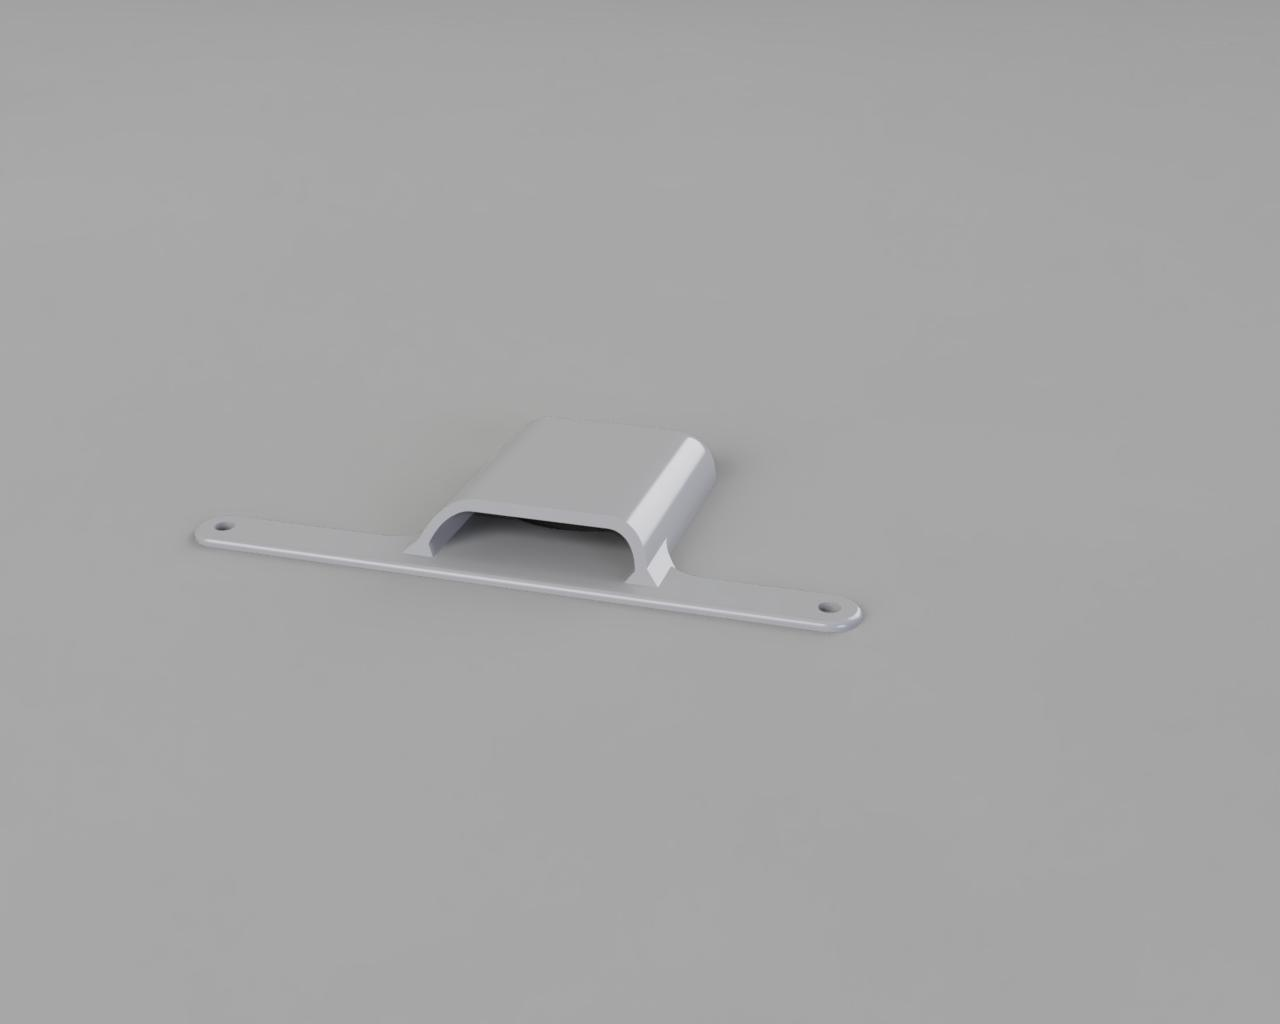 fan cover.JPEG Download free STL file fan cover Ender 3 • 3D printable template, TimBauer-TB3Dprint